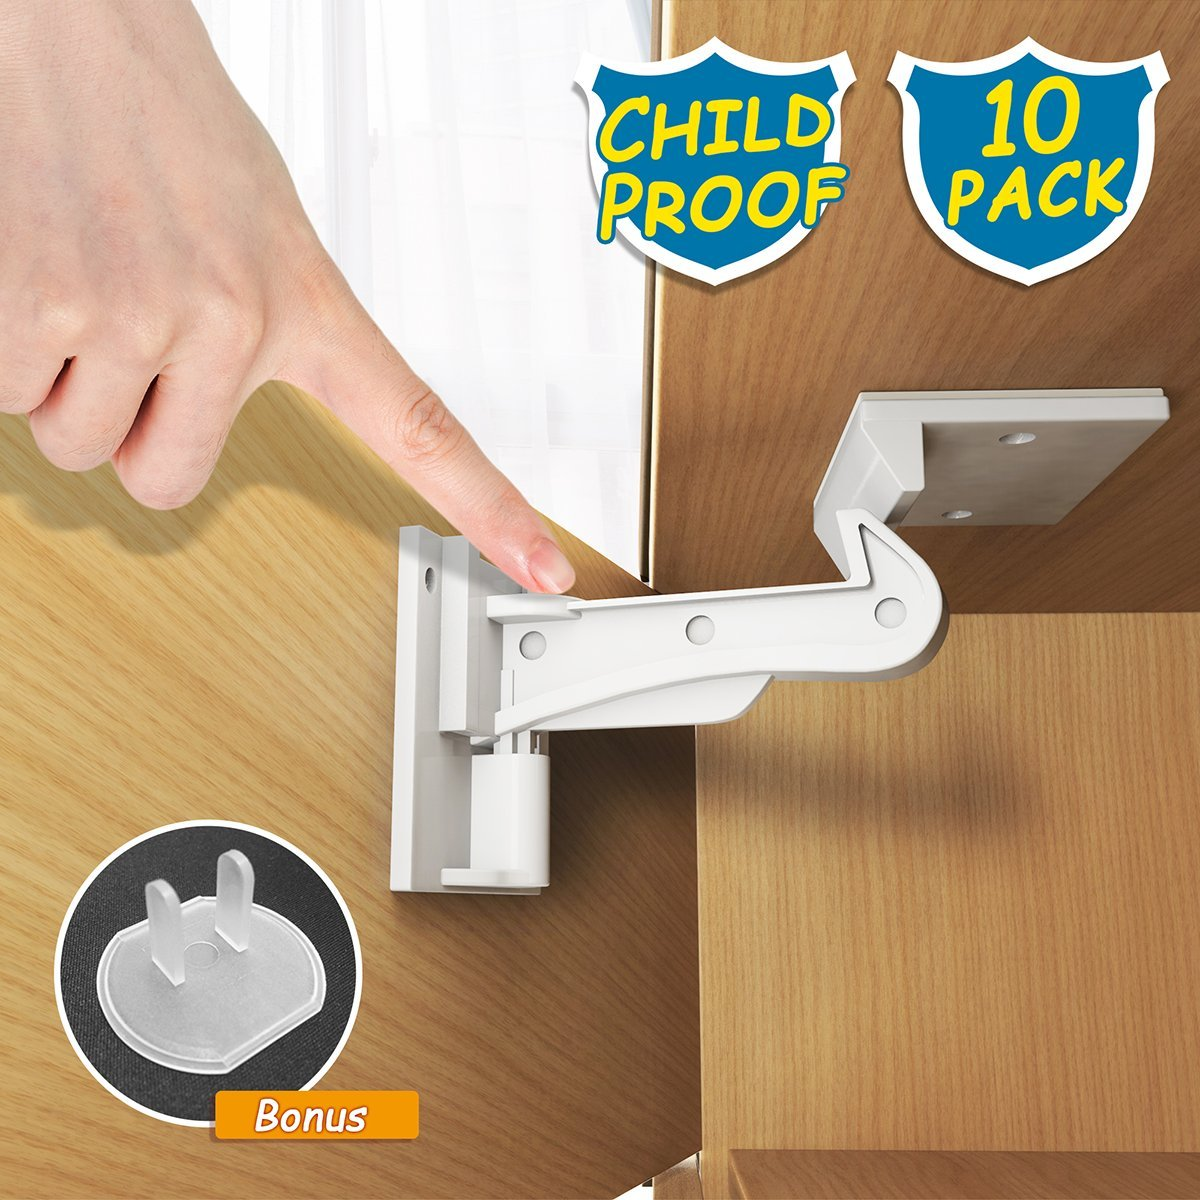 72321 Safety 1st 14 Pack Wide Grip Cabinet Locks /& Drawer Latches Child Proof